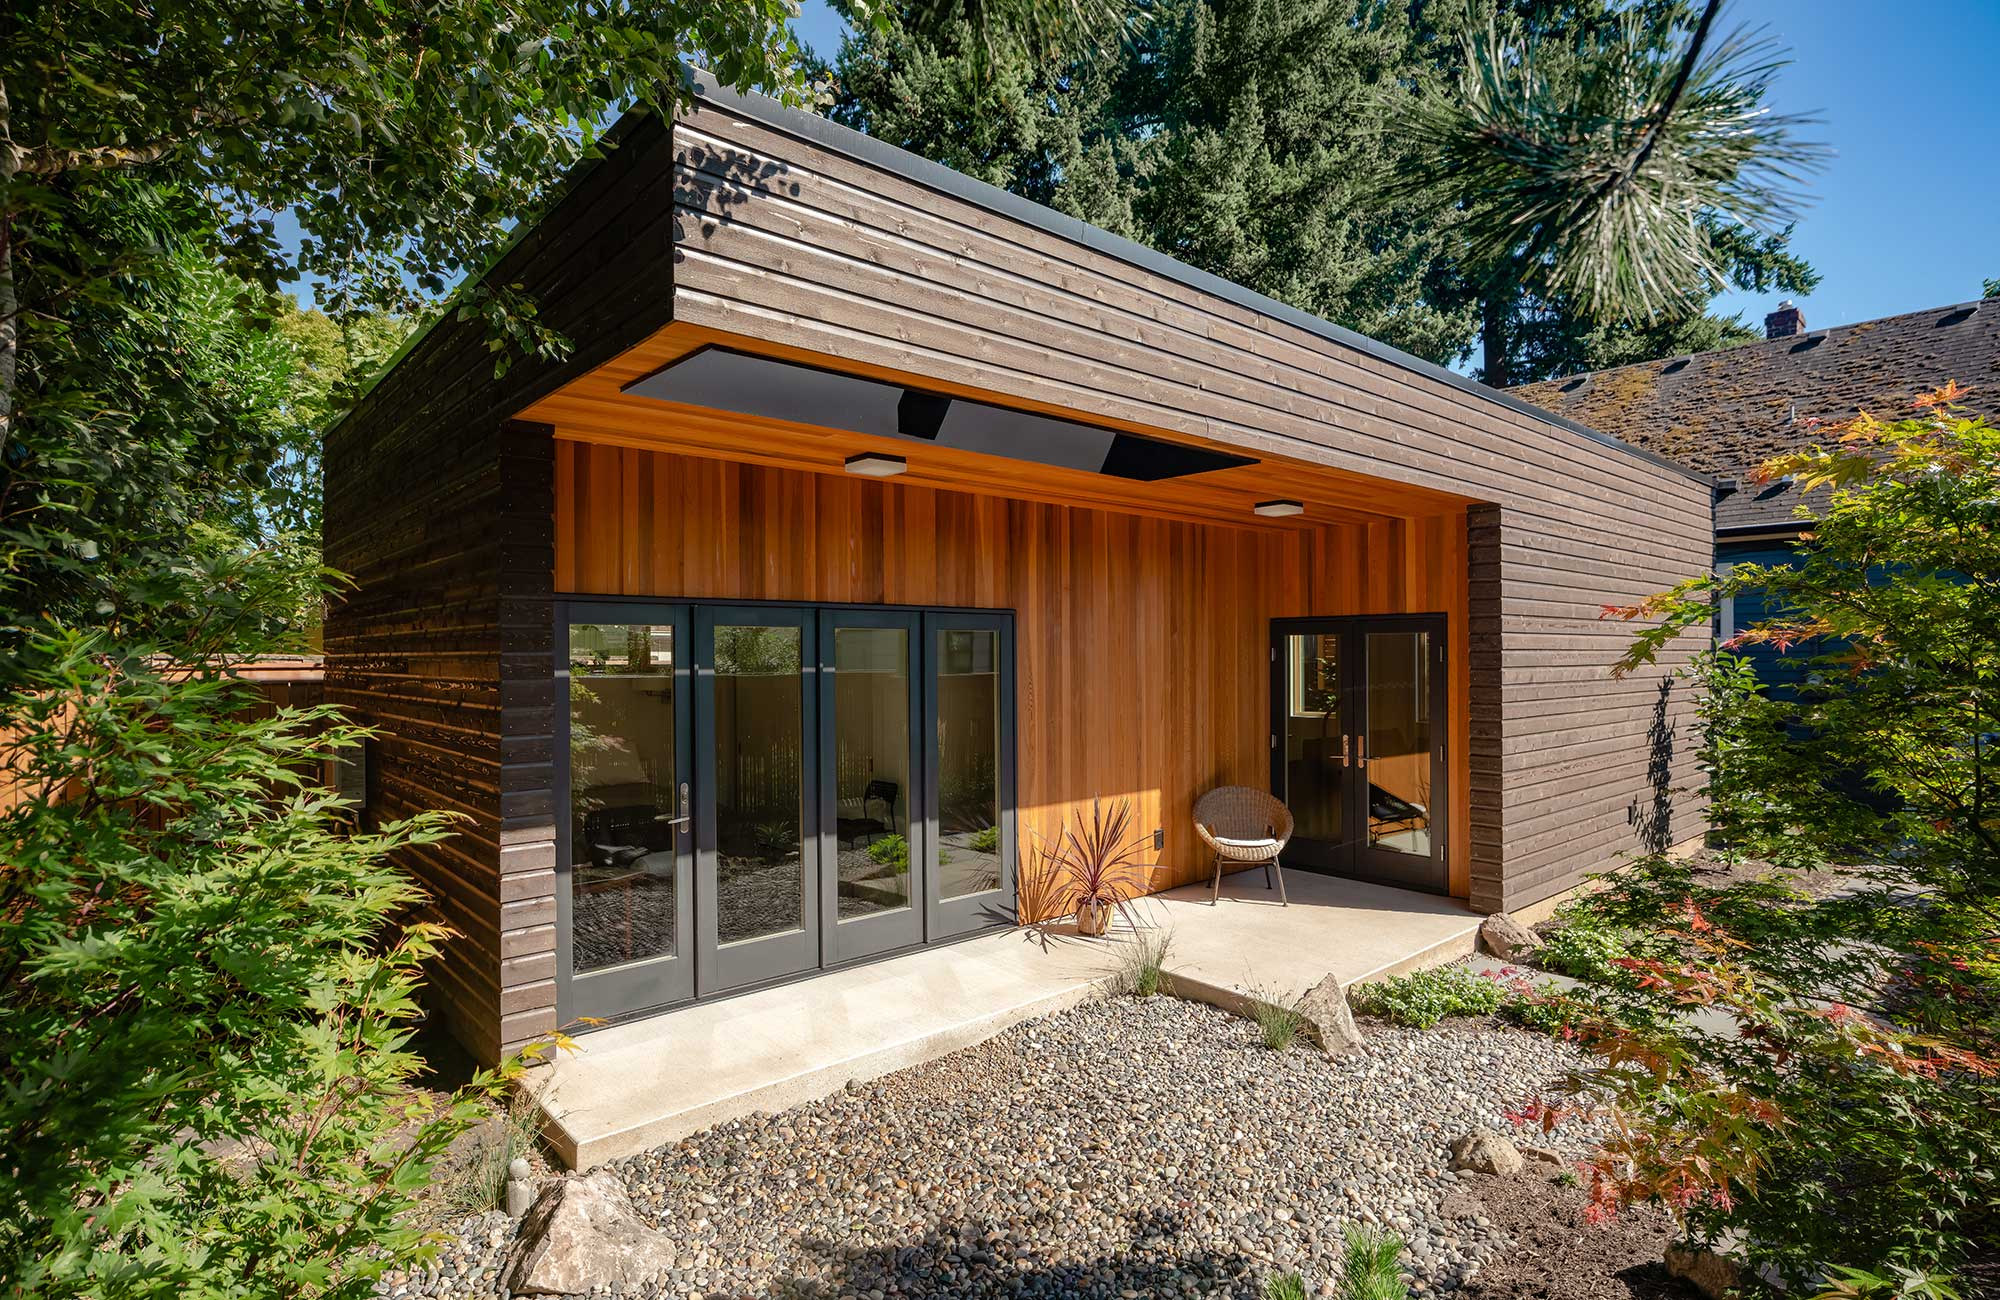 An ADU tiny home in portland with a timber cantilever, presented at the 2019 Build Small Live Large conference